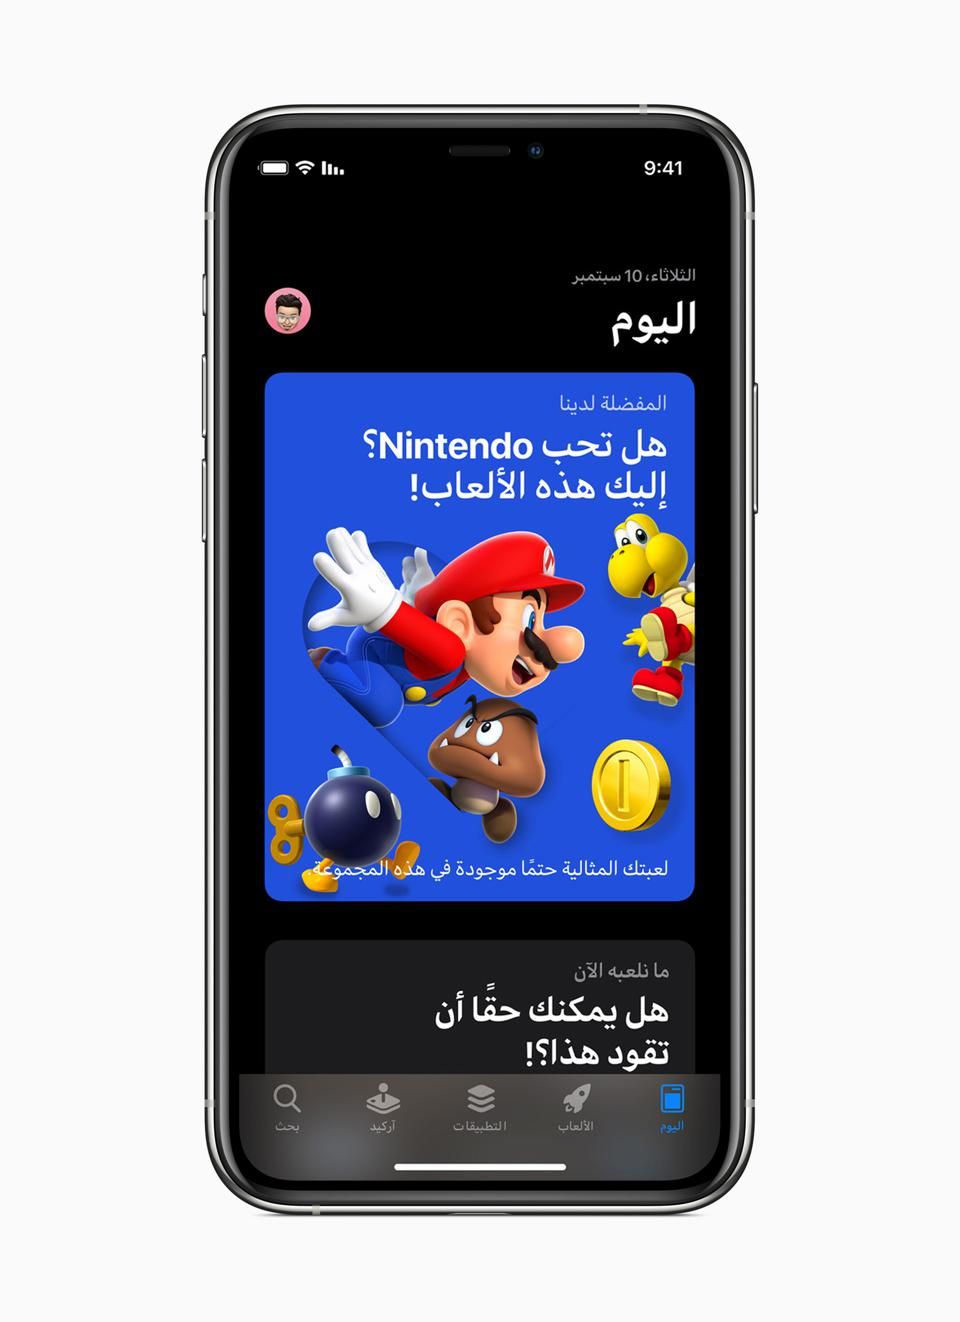 Mario is now available in more countries ...